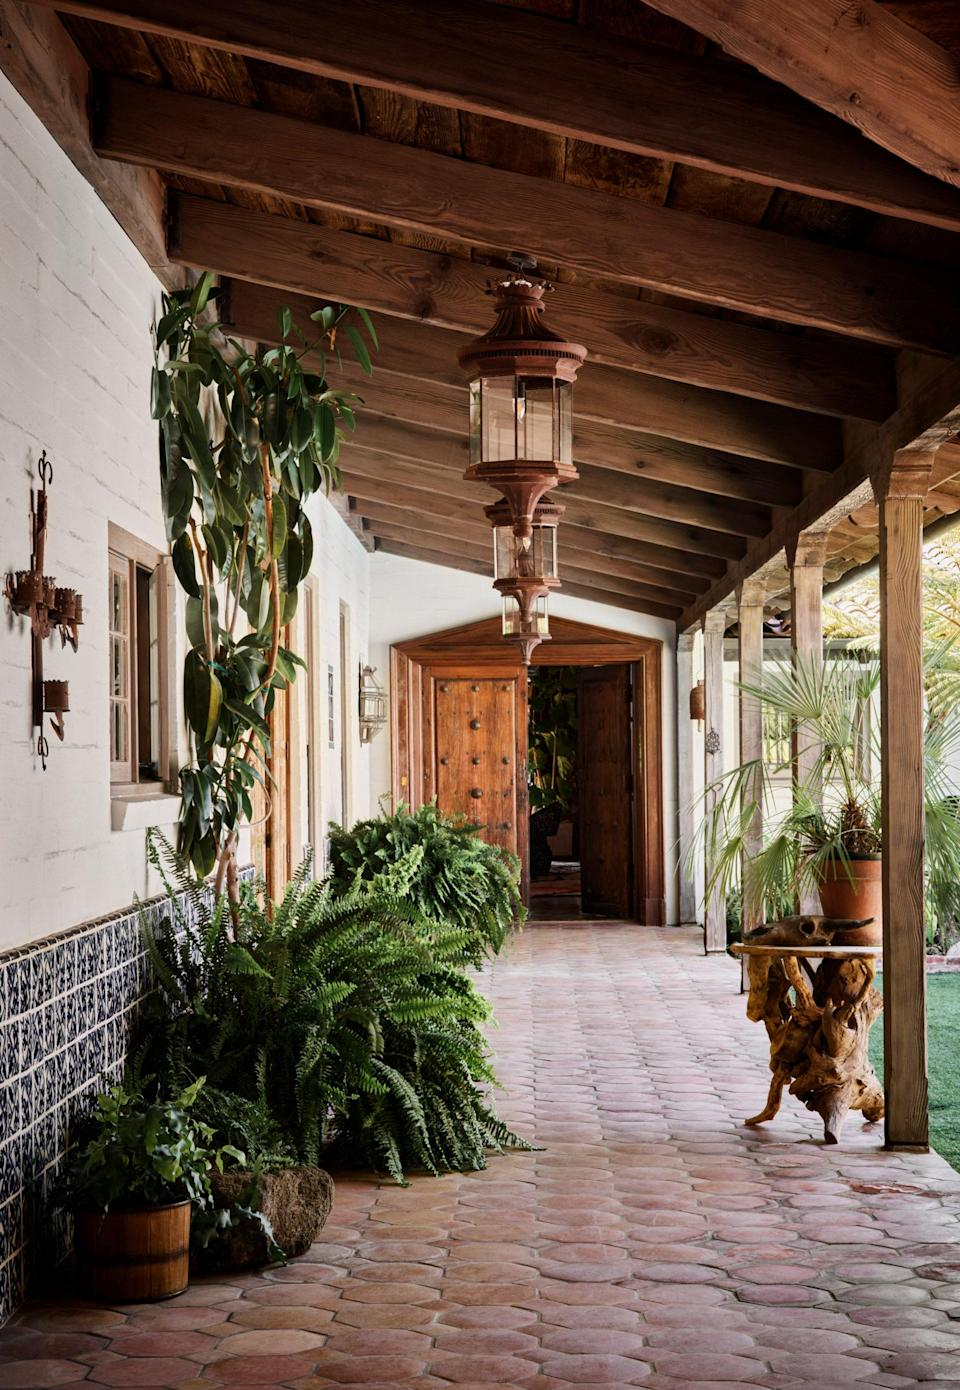 Saltillo tile floors extend from the exterior of the home to the interior. The pool is situated in the courtyard to the right.